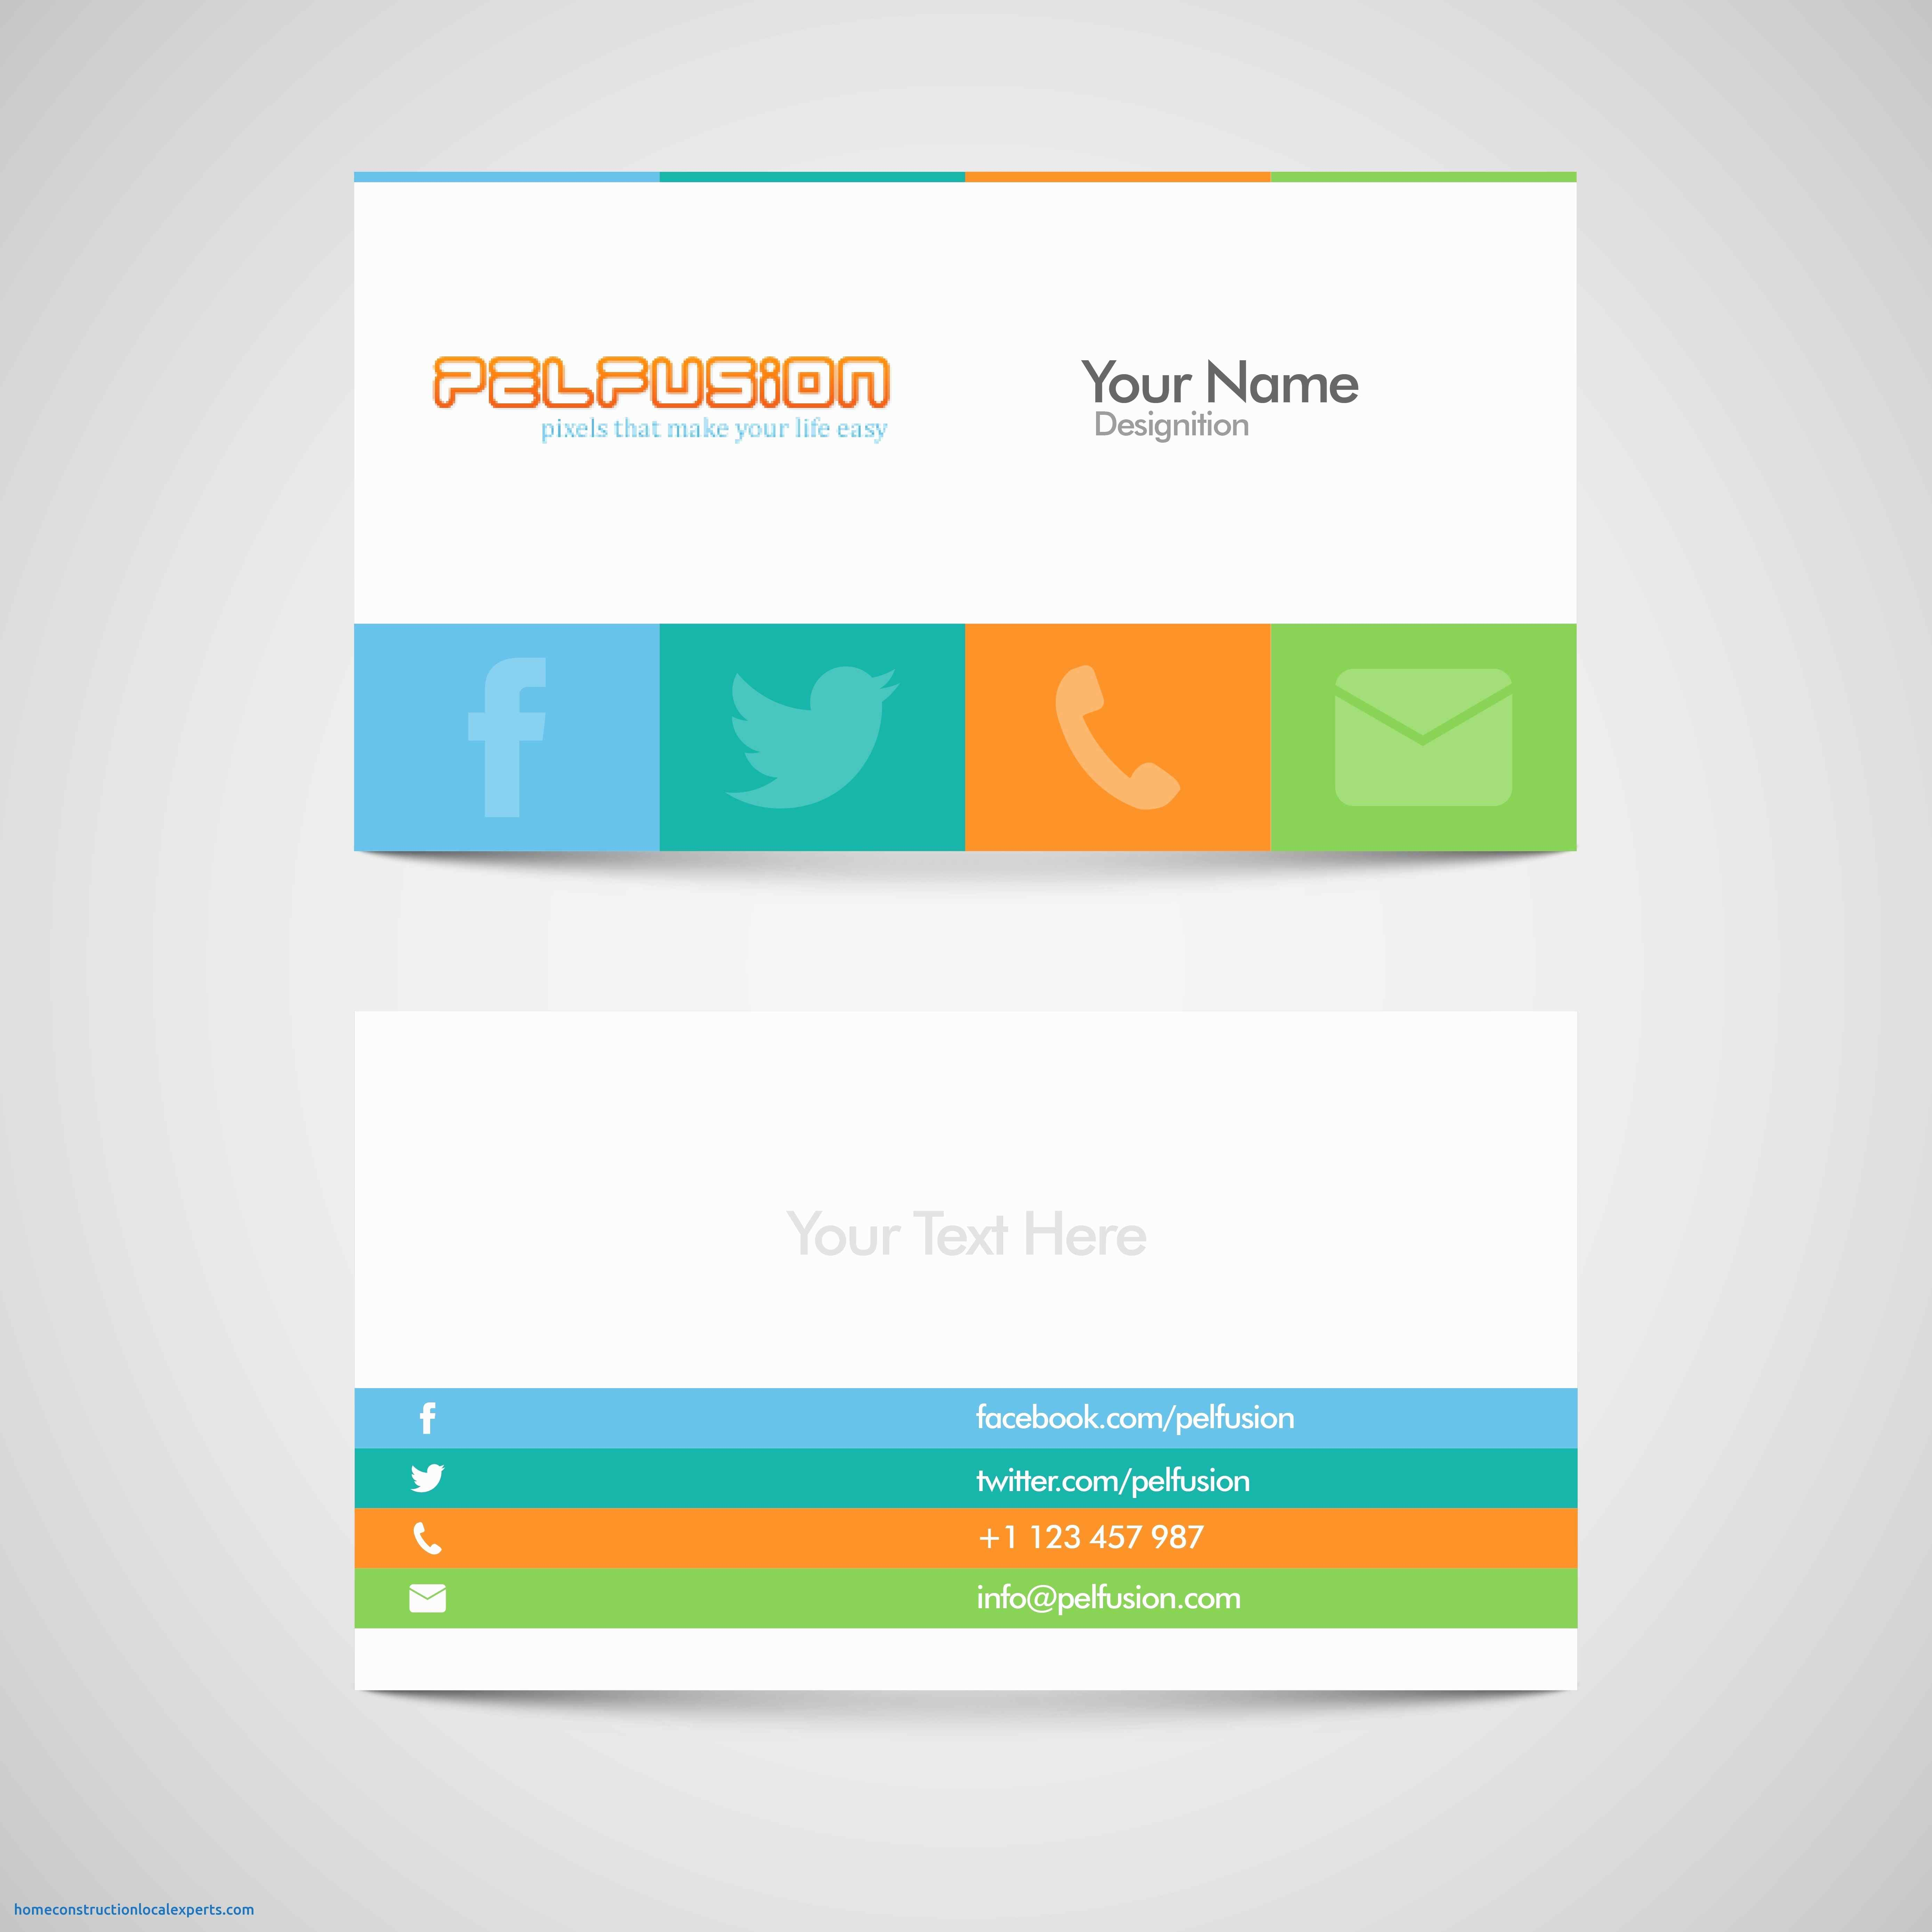 65 Format Blank Business Card Template Illustrator Free For Free with Blank Business Card Template Illustrator Free